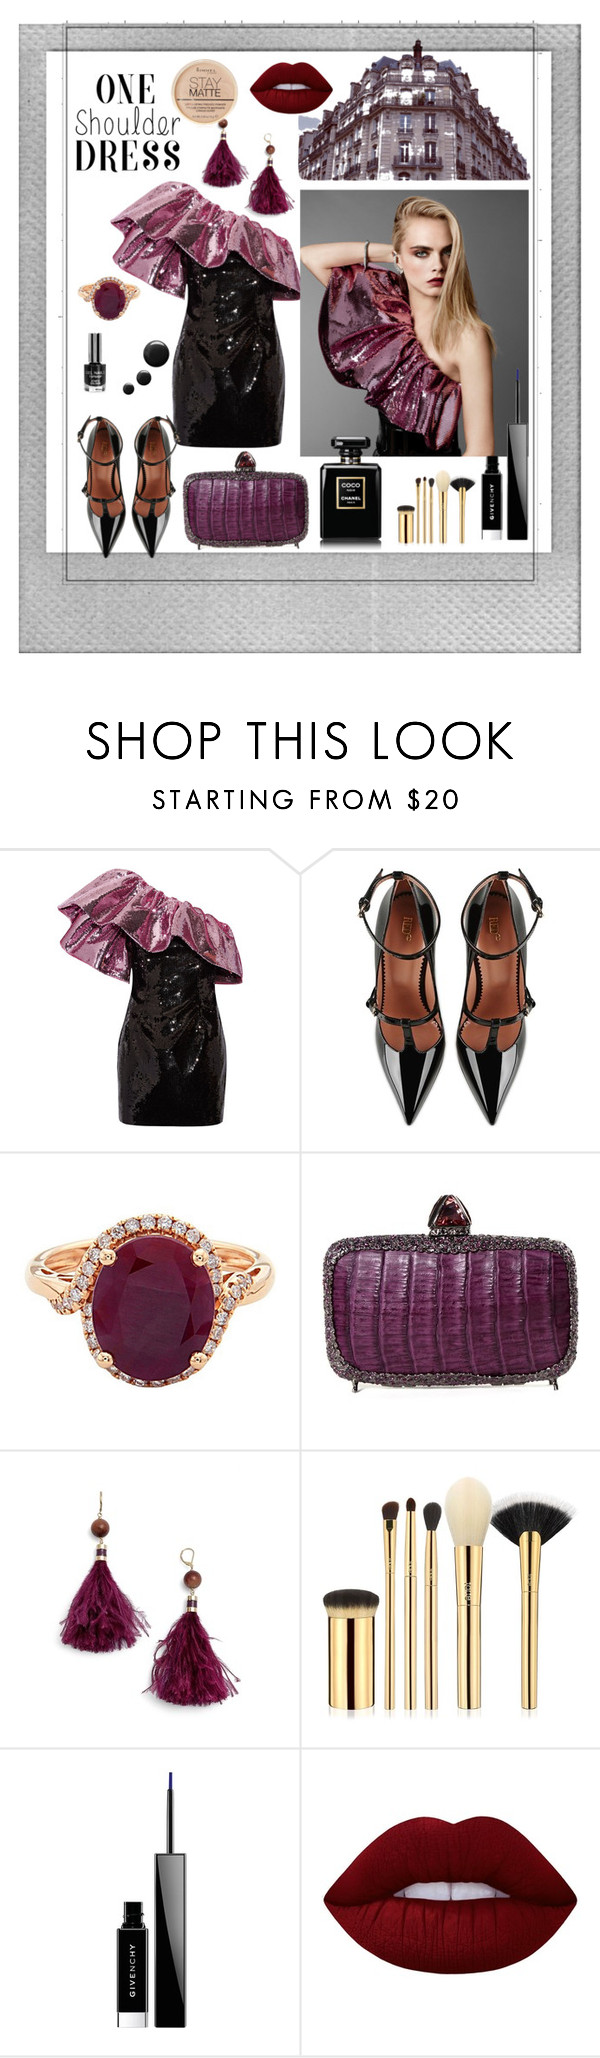 """""""one shoulder dress"""" by explorer-14673103603 on Polyvore featuring Yves Saint Laurent, RED Valentino, By Terry, Clara Kasavina, Kate Spade, tarte, Givenchy, Lime Crime, Rimmel and Polaroid"""